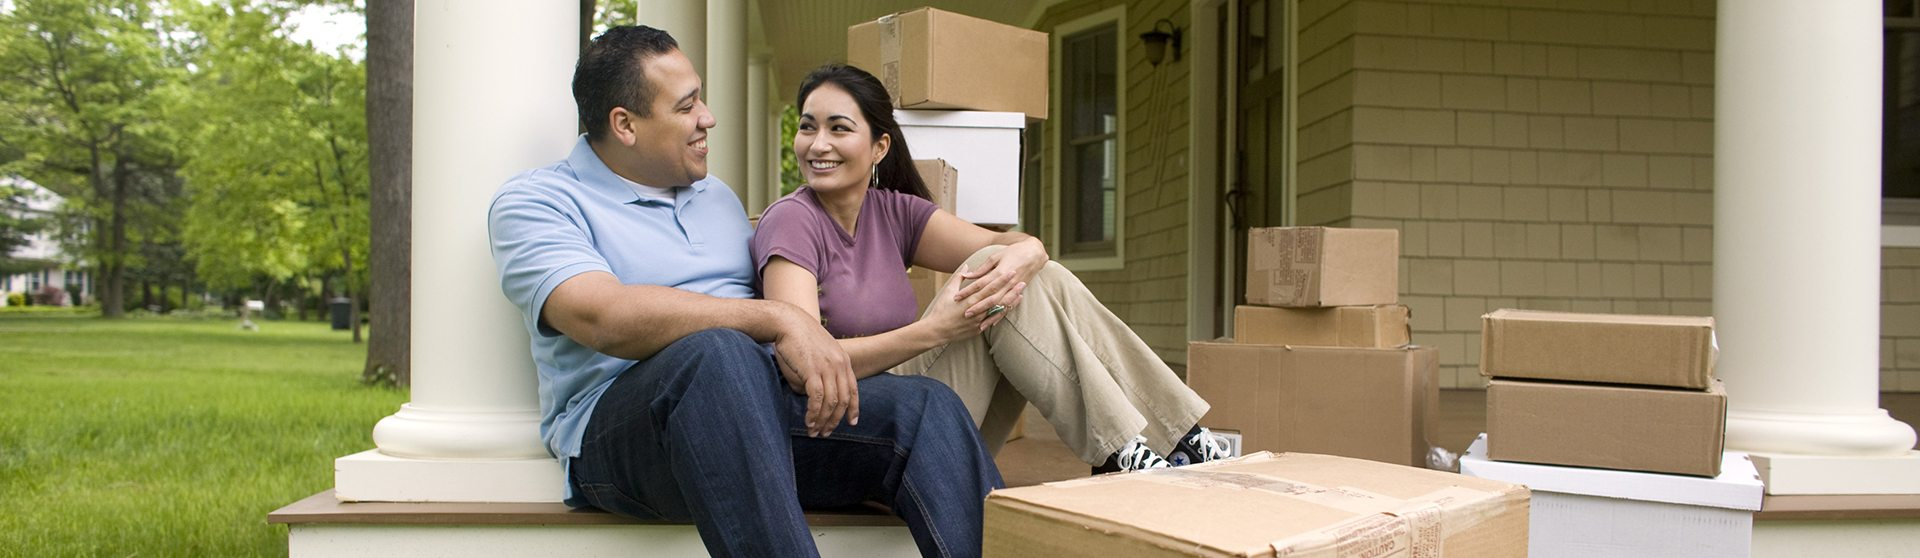 Movers Long Island NY | Mover Long Island | Long Island Moving Companies | Dunbar Moving